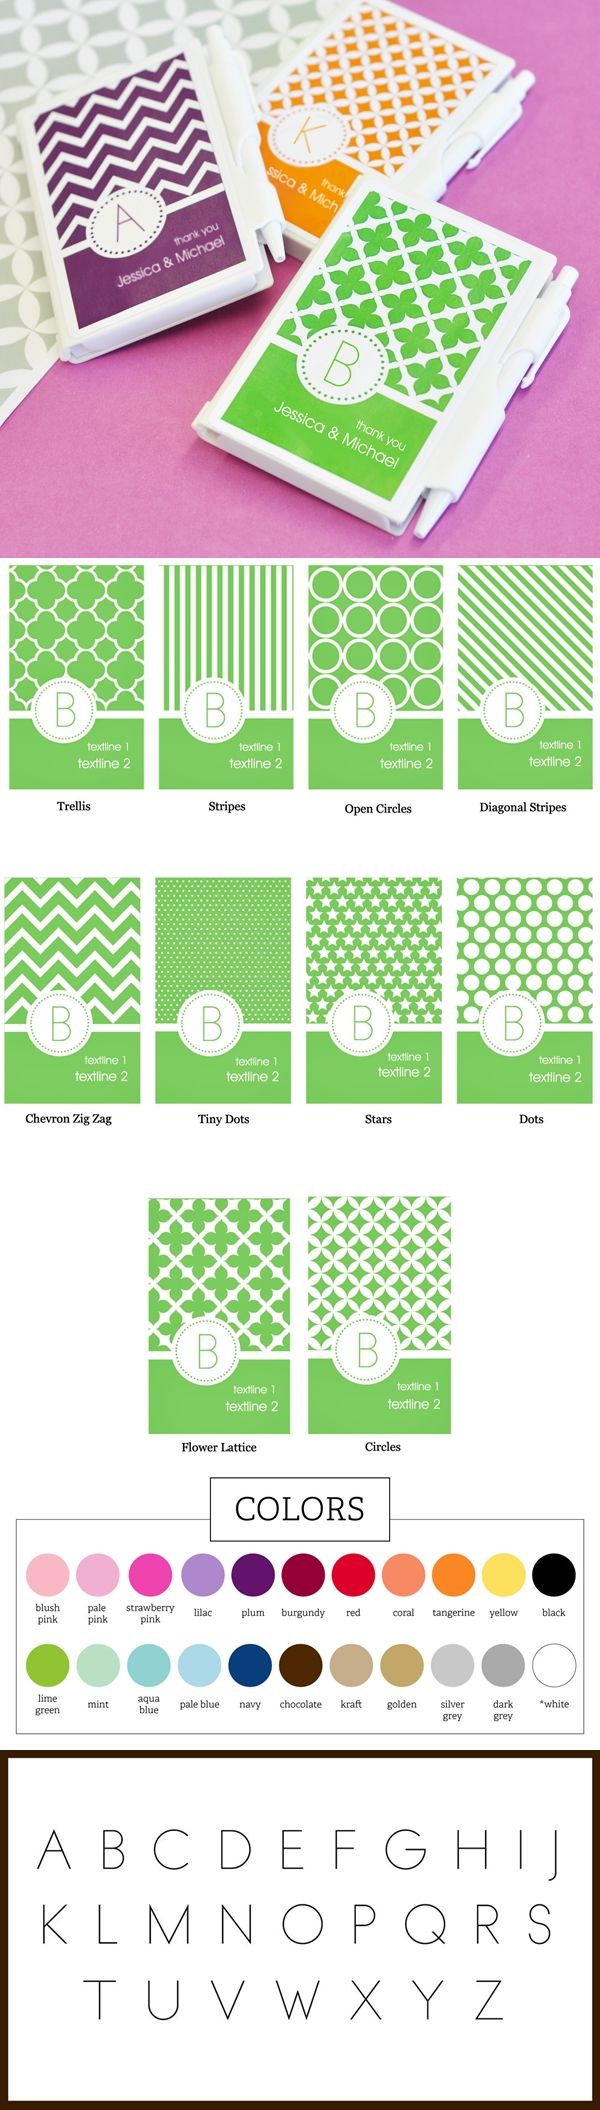 MOD Pattern Monogram Personalized Notebooks Favors